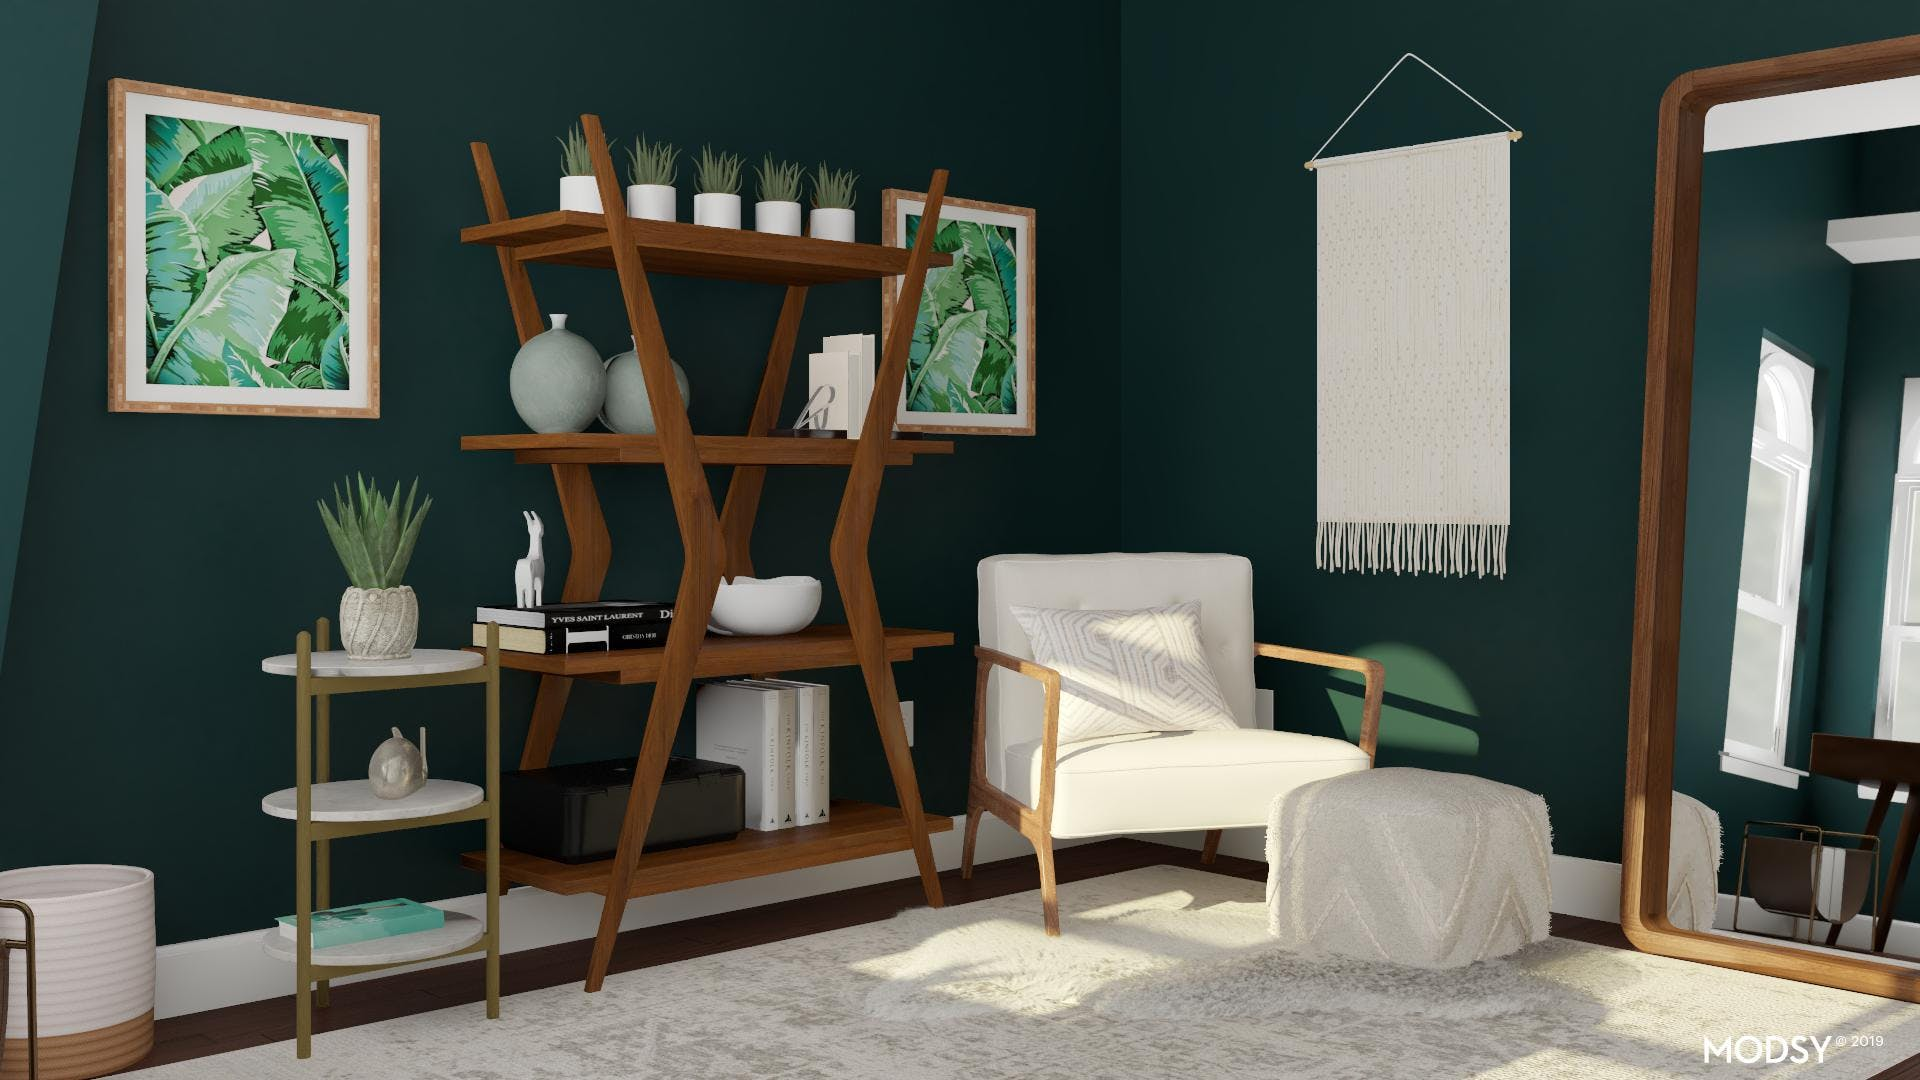 Complementing Wood-Tones For Your Color Scheme